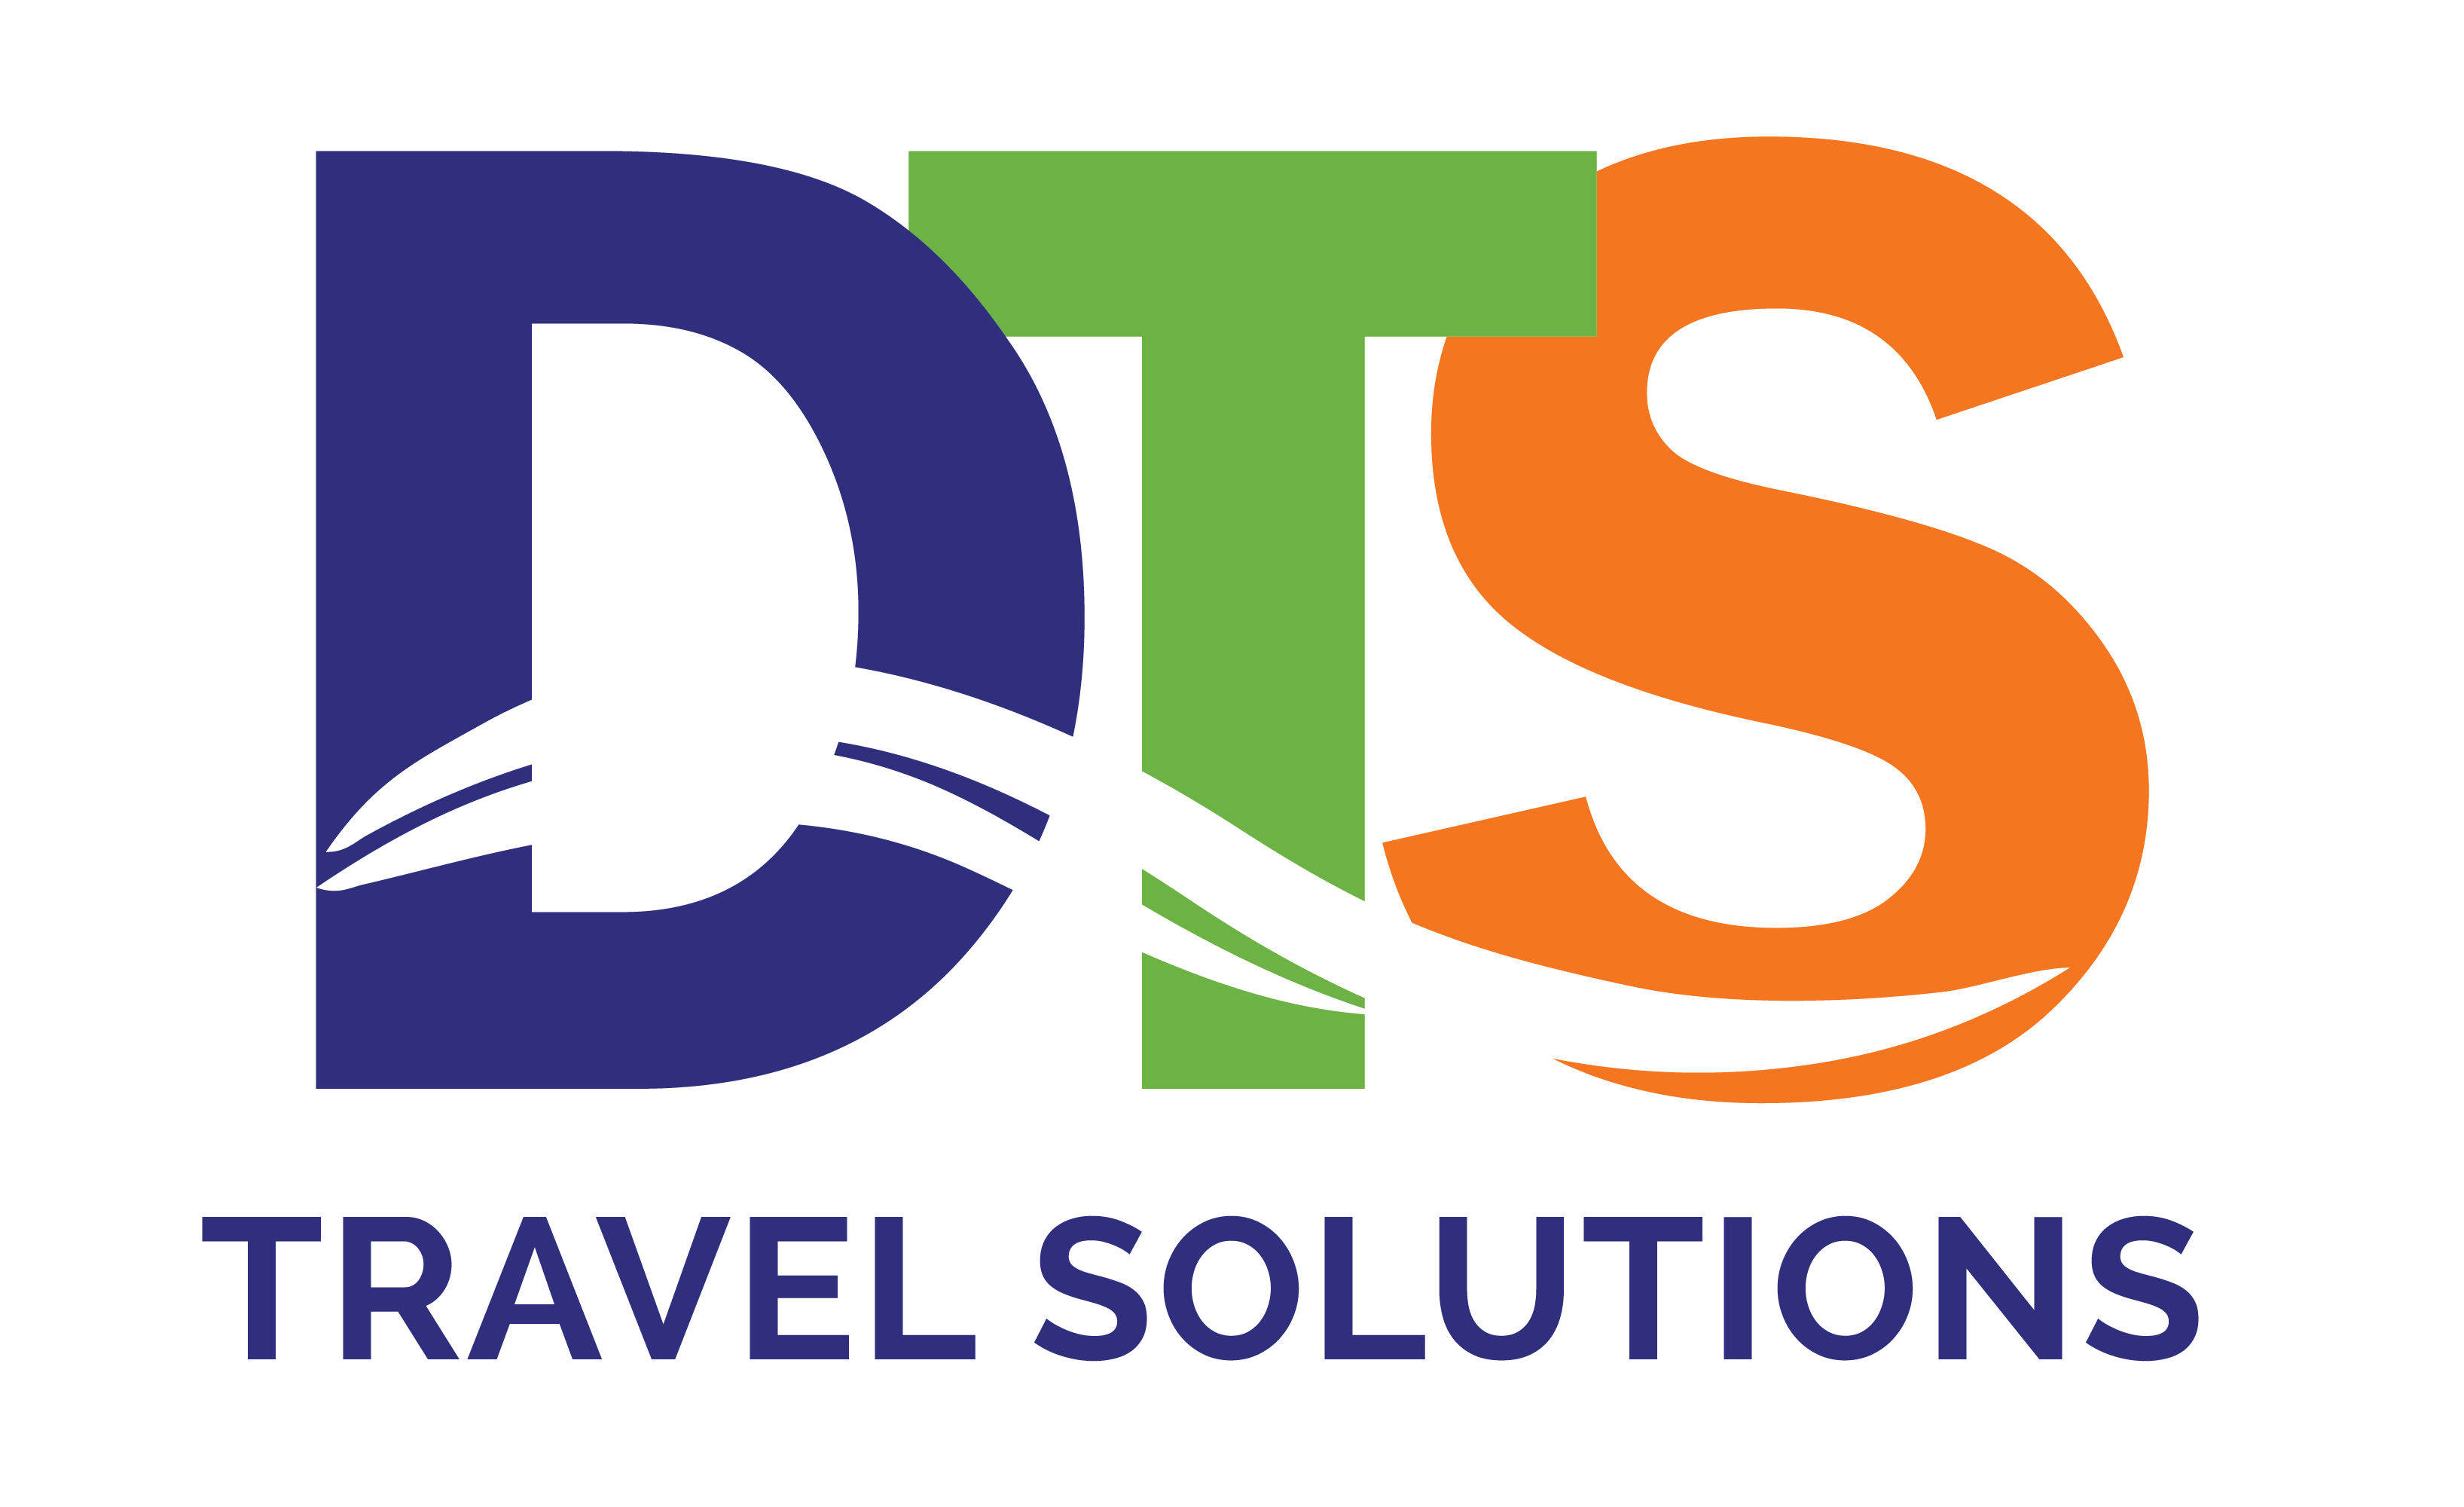 Dominican travel solutions